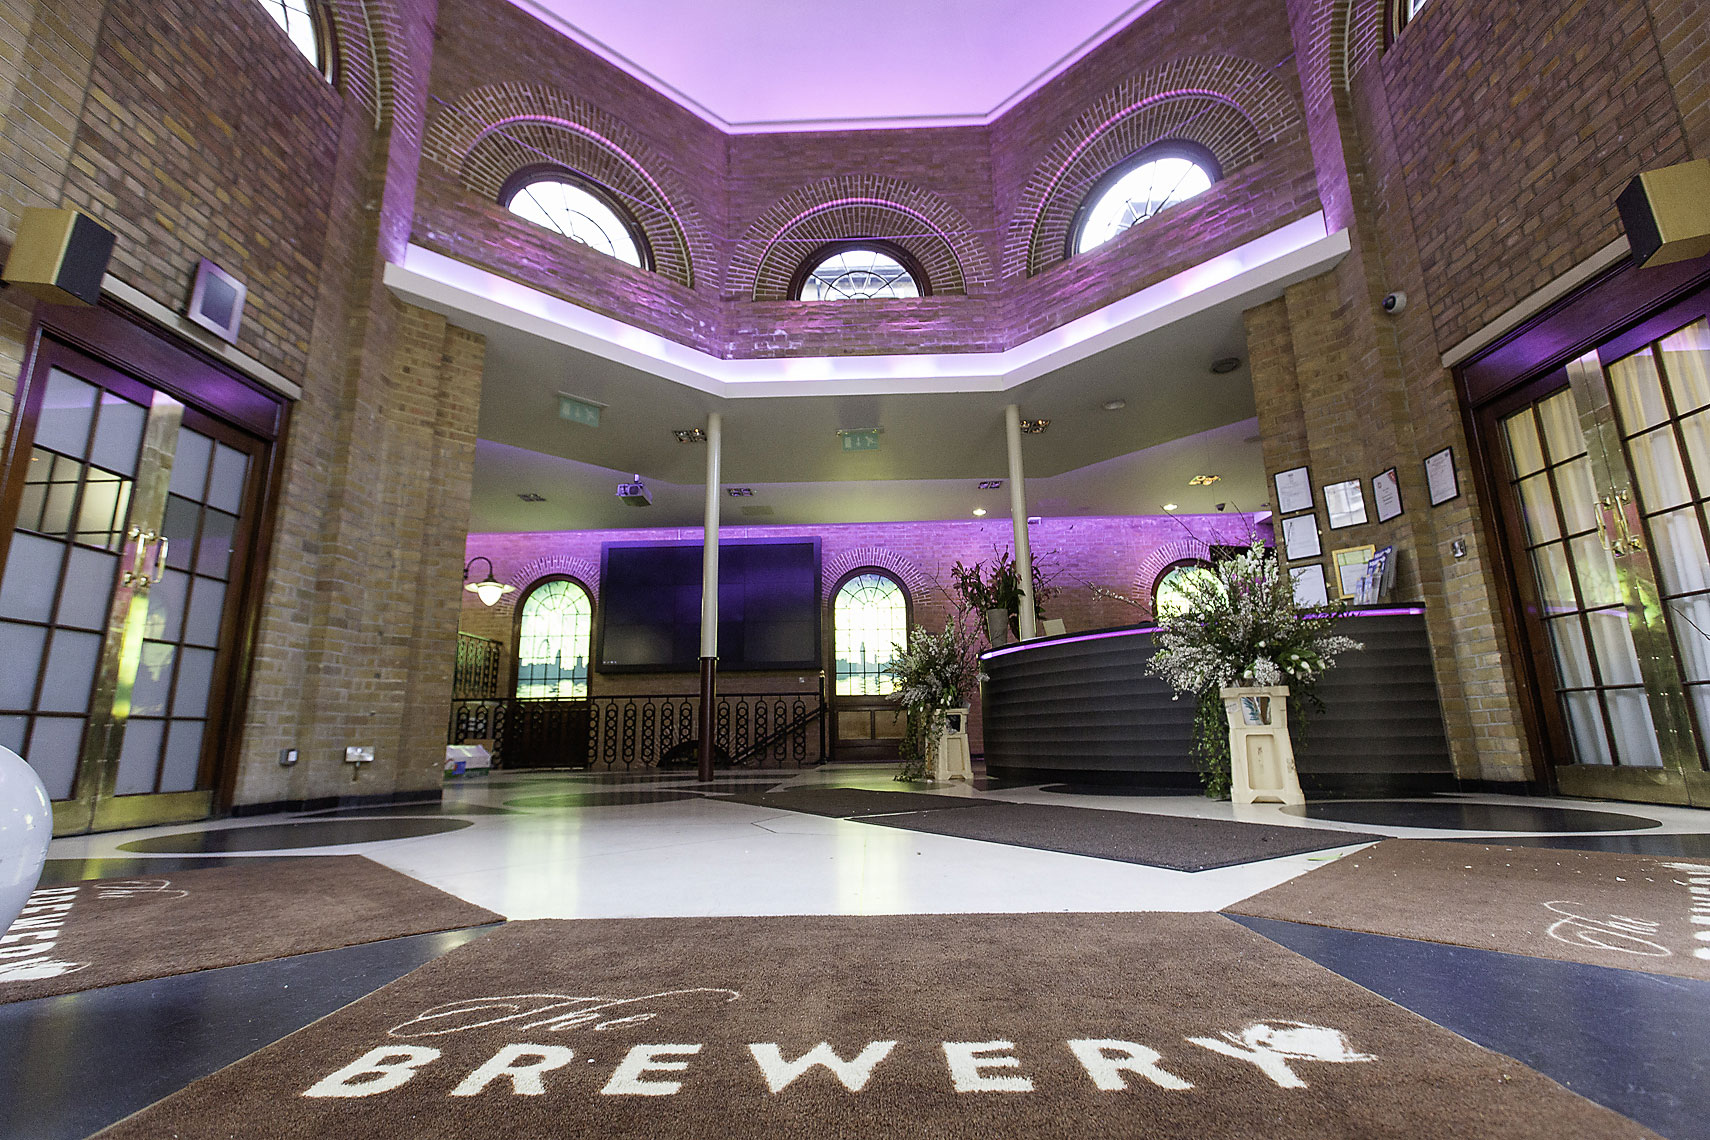 Interior entrance of high-end hotel, with high ceilings and purple decorative lighting